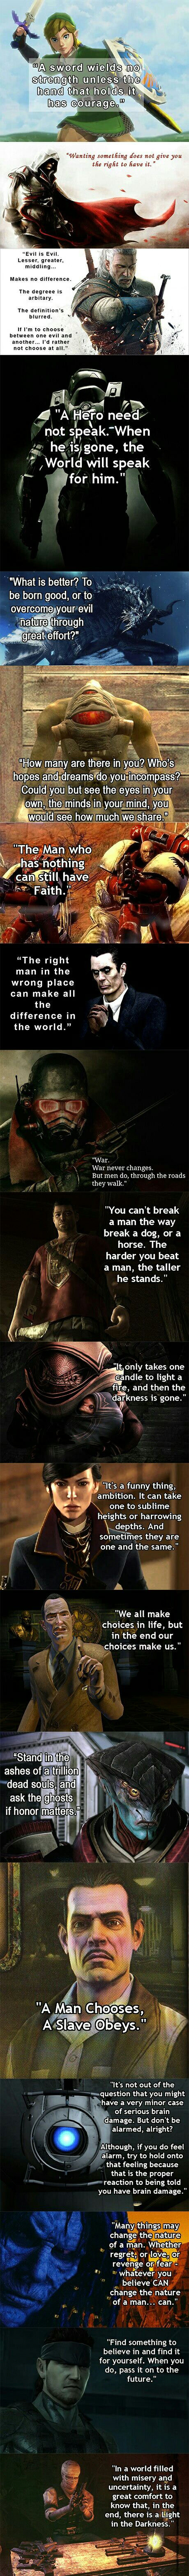 There Are Some Good Quotes Behind Those Pixels Video Game Quotes Game Quotes Some Good Quotes